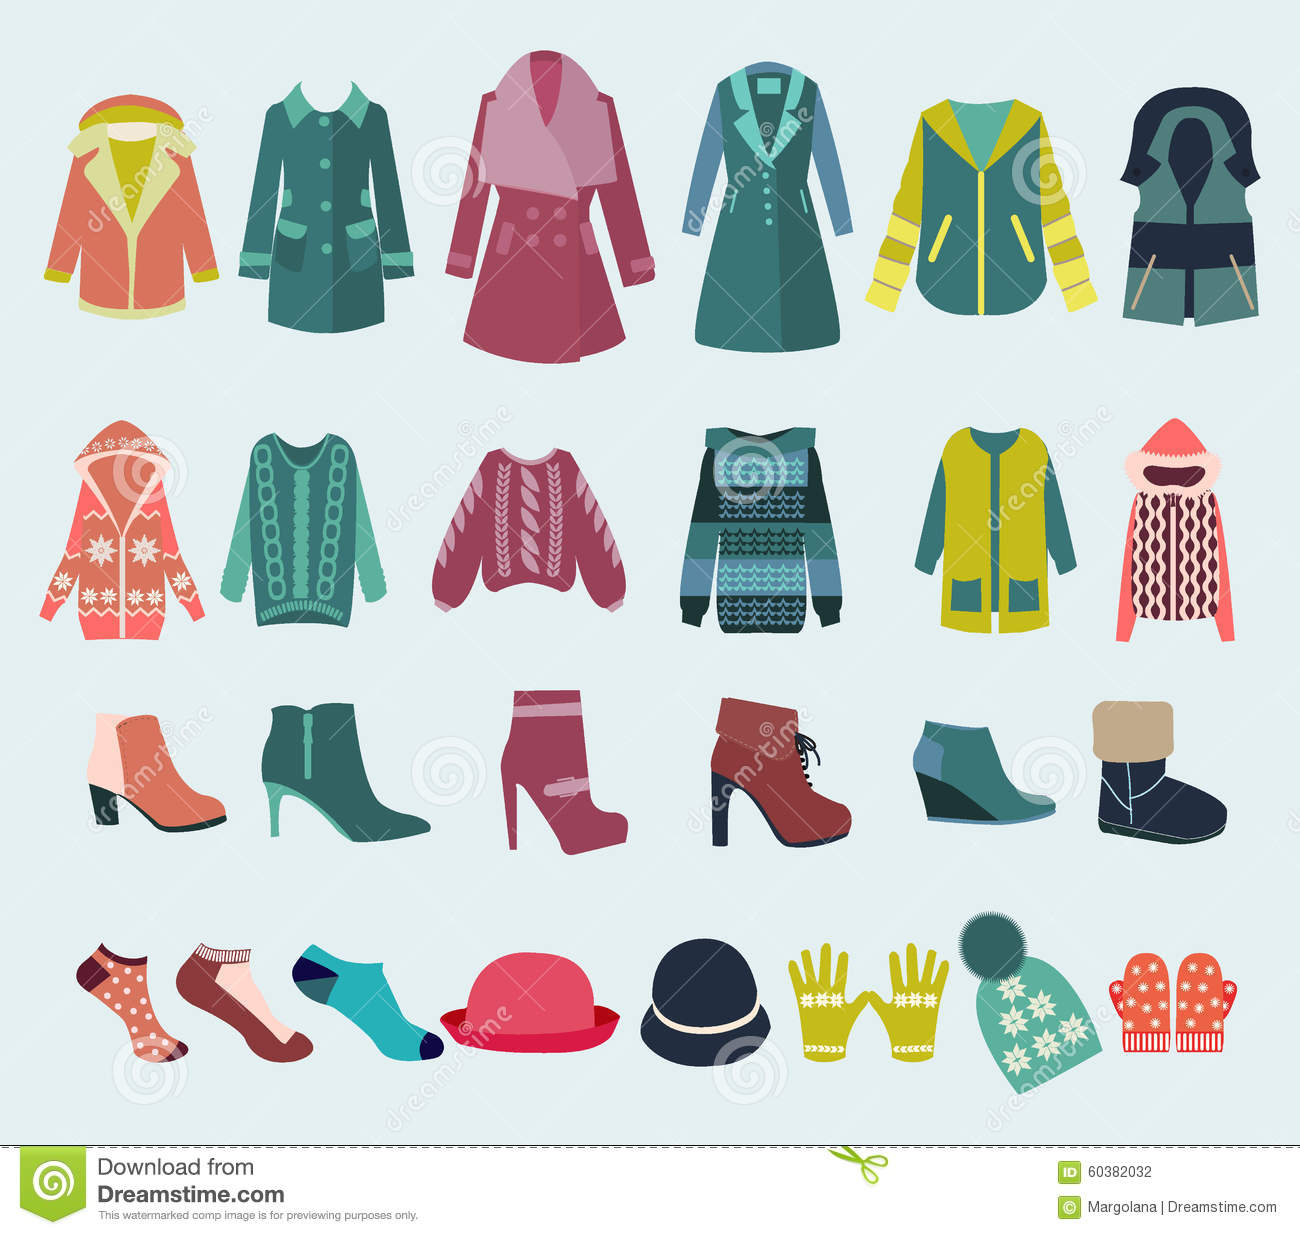 We provide quality winter clothing with cheaper price compare to local offline retail store. We offering a wide range of selection of winter wear, such as winter coat, winter jacket, winter sweater, winter outerwear, gloves, mittens and other winter accessories.